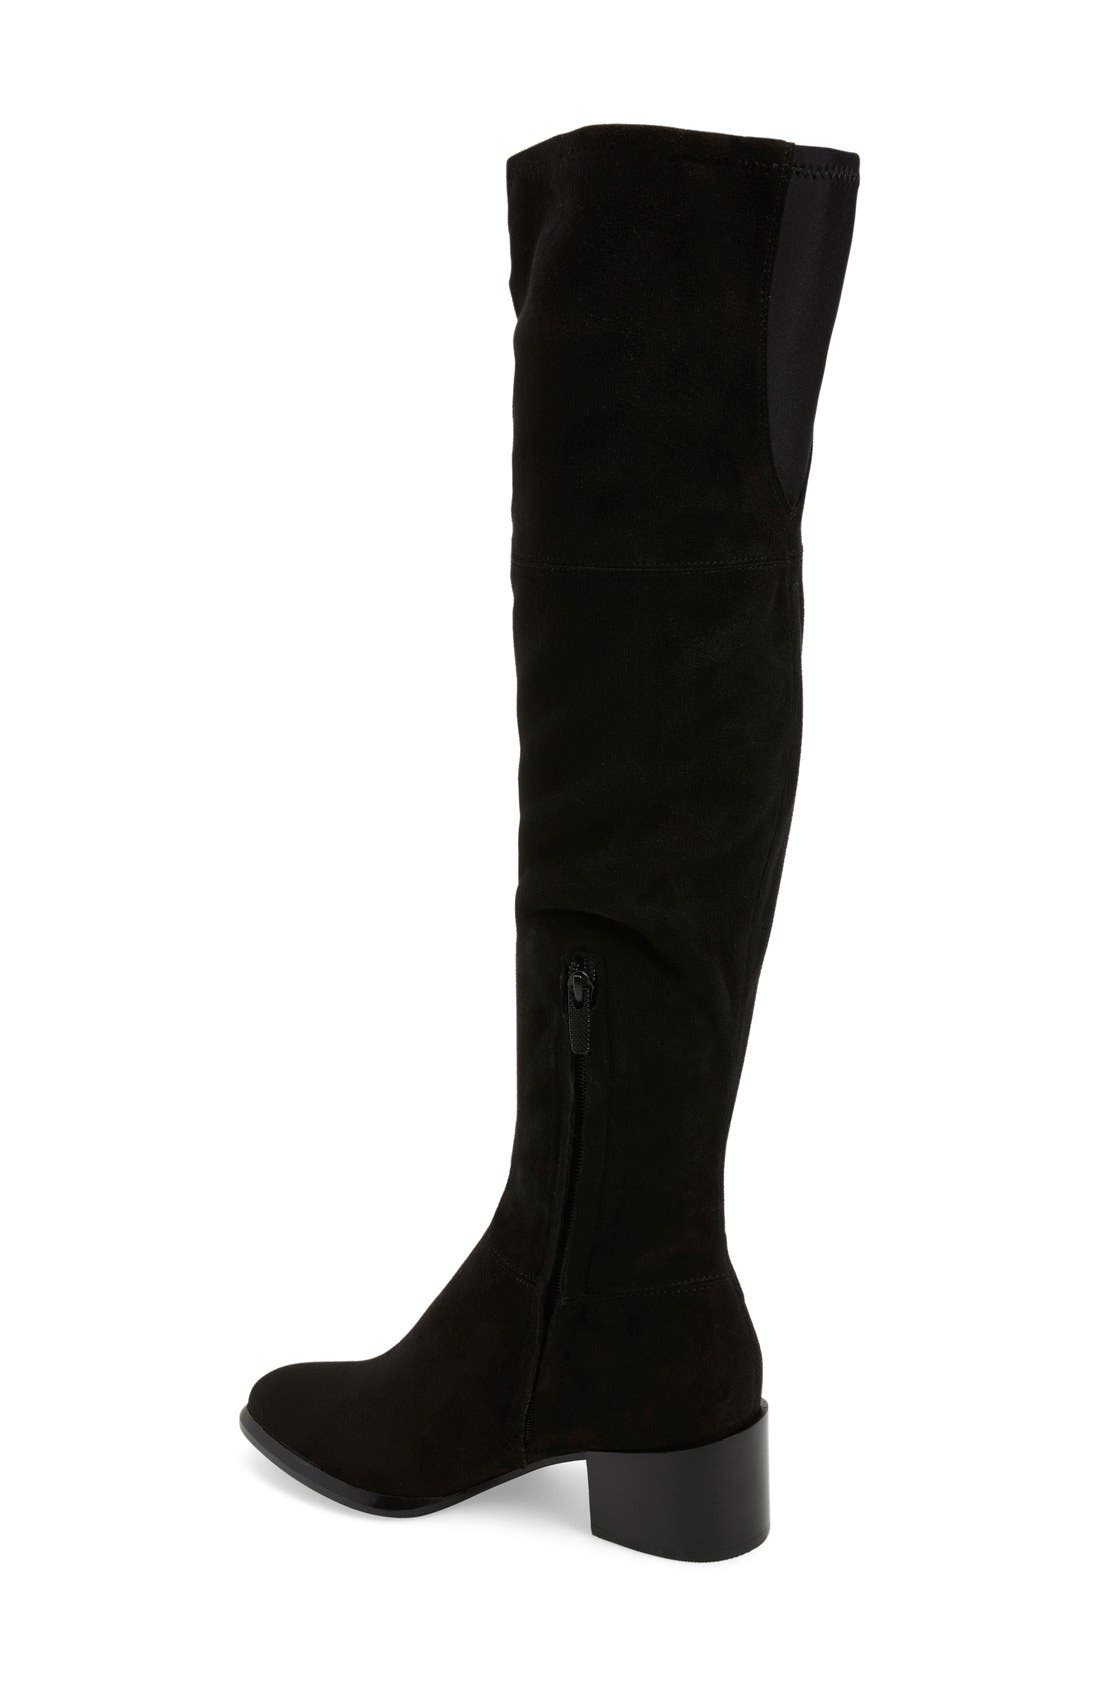 Alternate Image 2  - Calvin Klein 'Nani' Over The Knee Boot (Women) (Special Purchase)